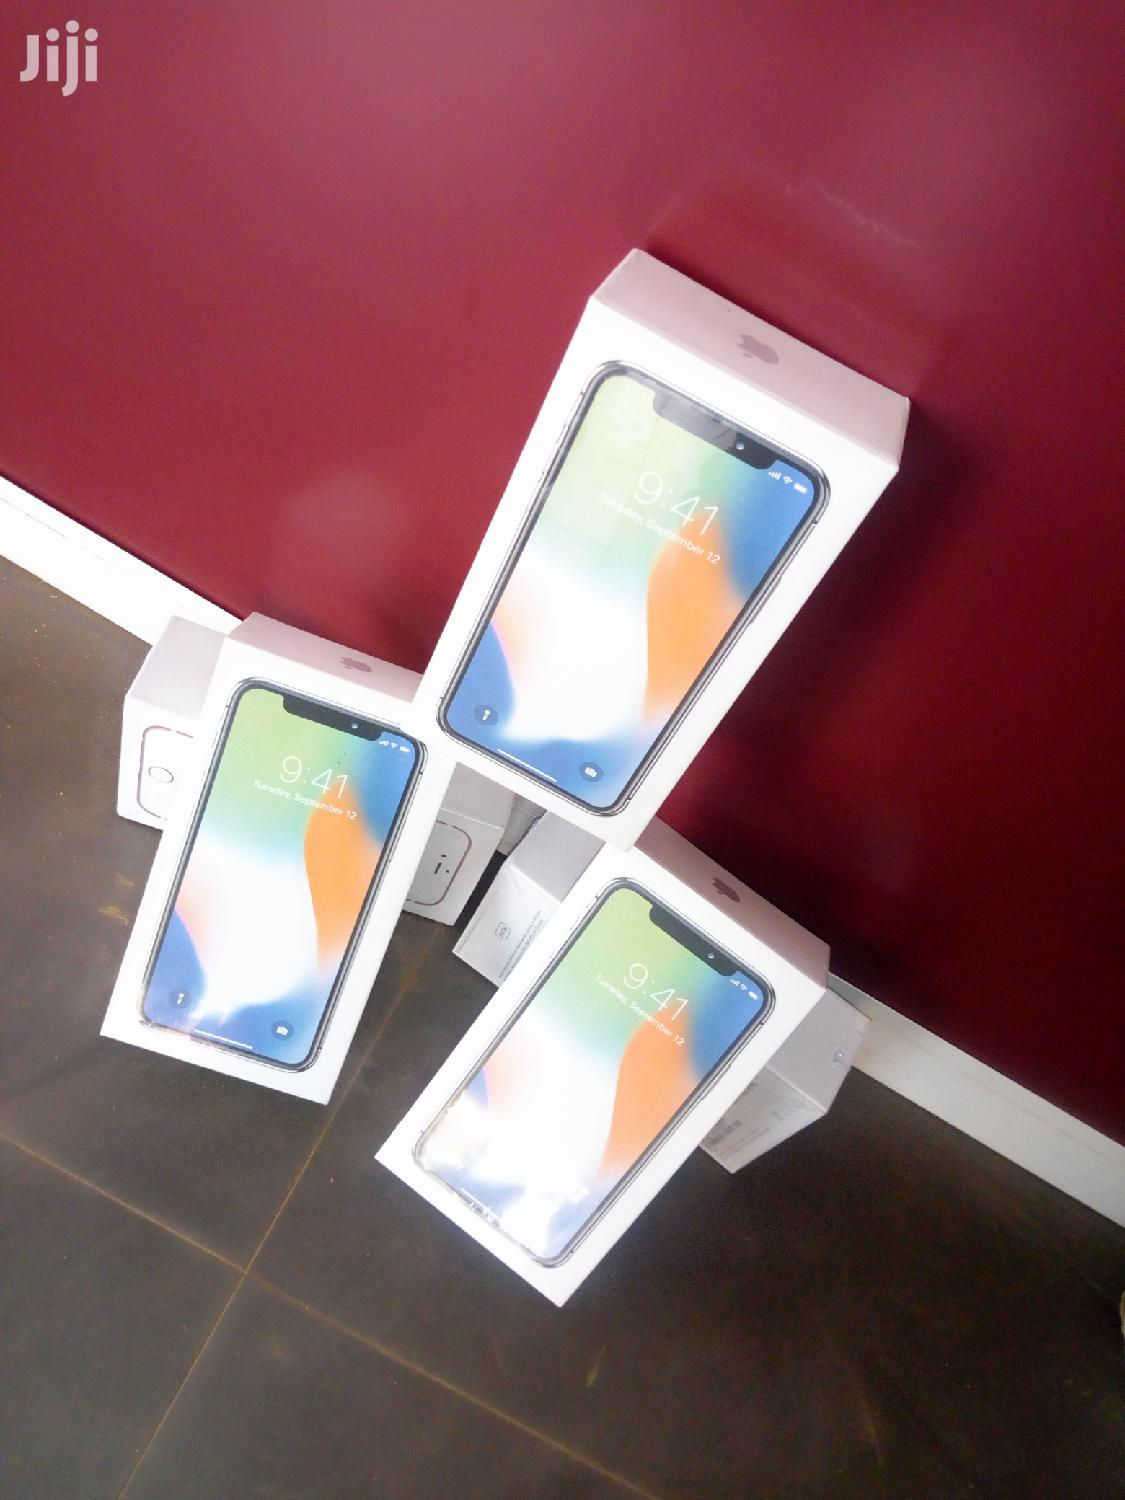 New Apple iPhone X 64 GB | Mobile Phones for sale in Madina, Greater Accra, Ghana